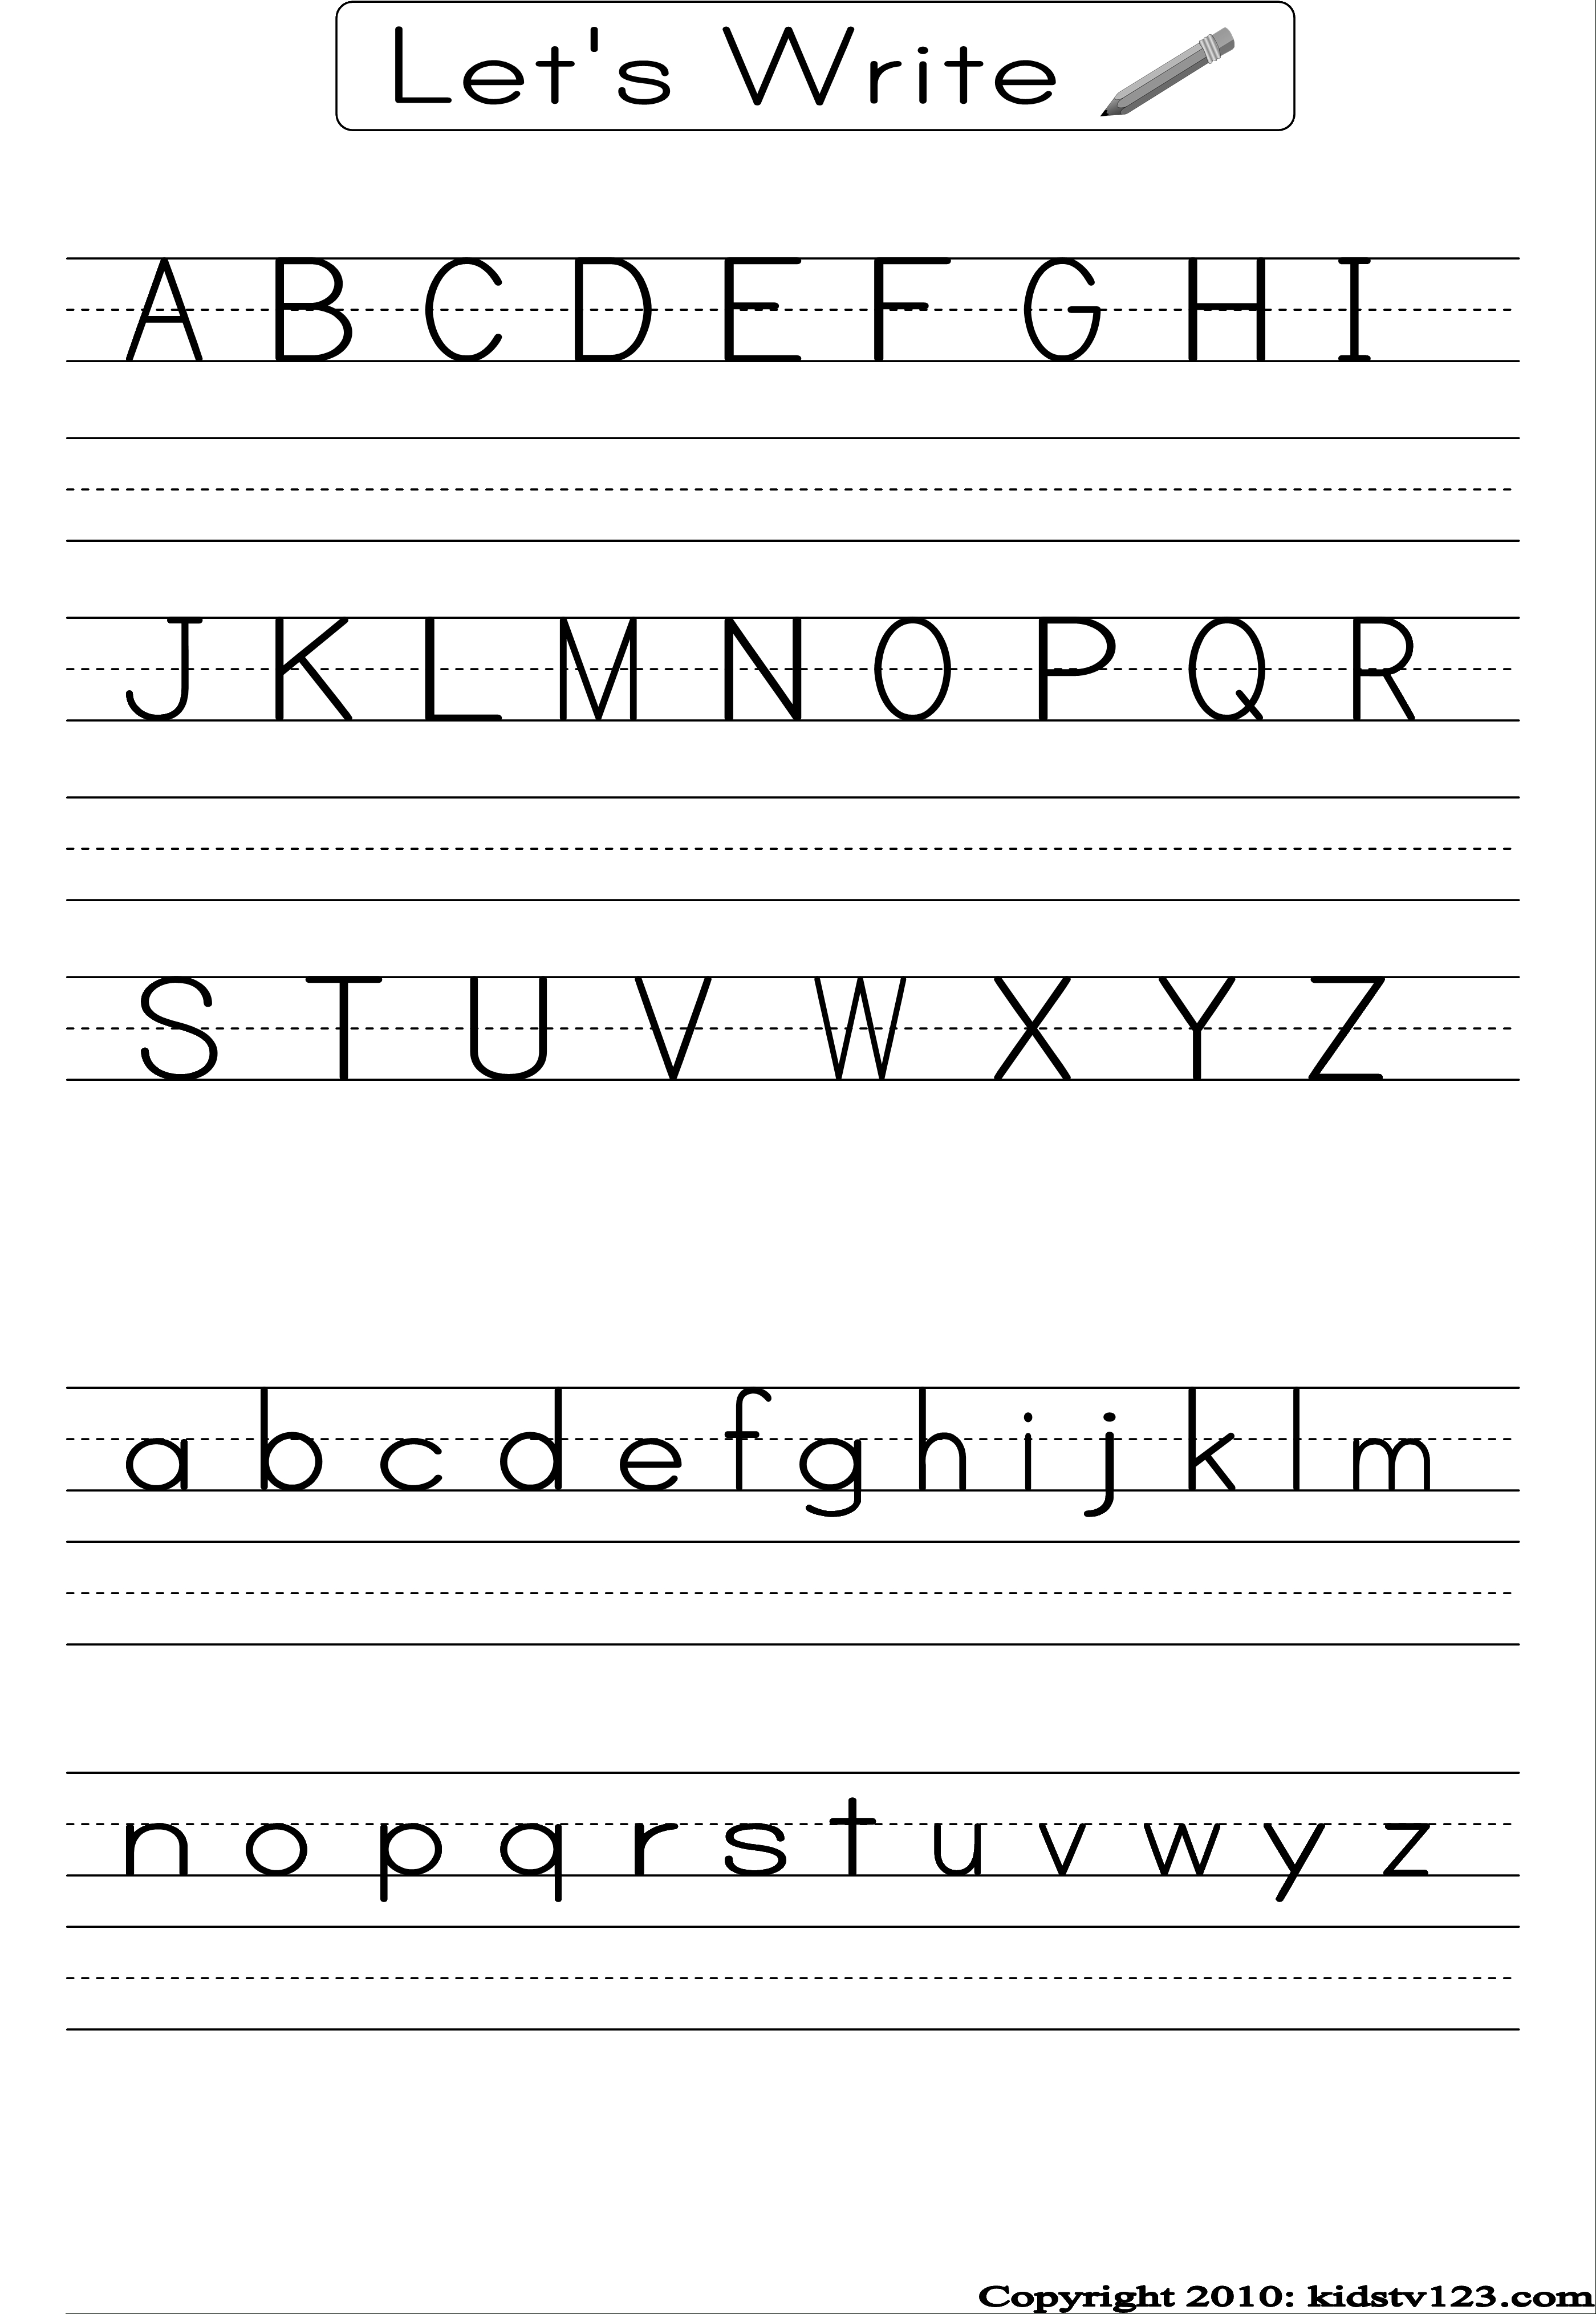 Alphabet Writing Practice Sheet | Edu-Fun | Alphabet Worksheets | Printable Letter Worksheets For Preschoolers